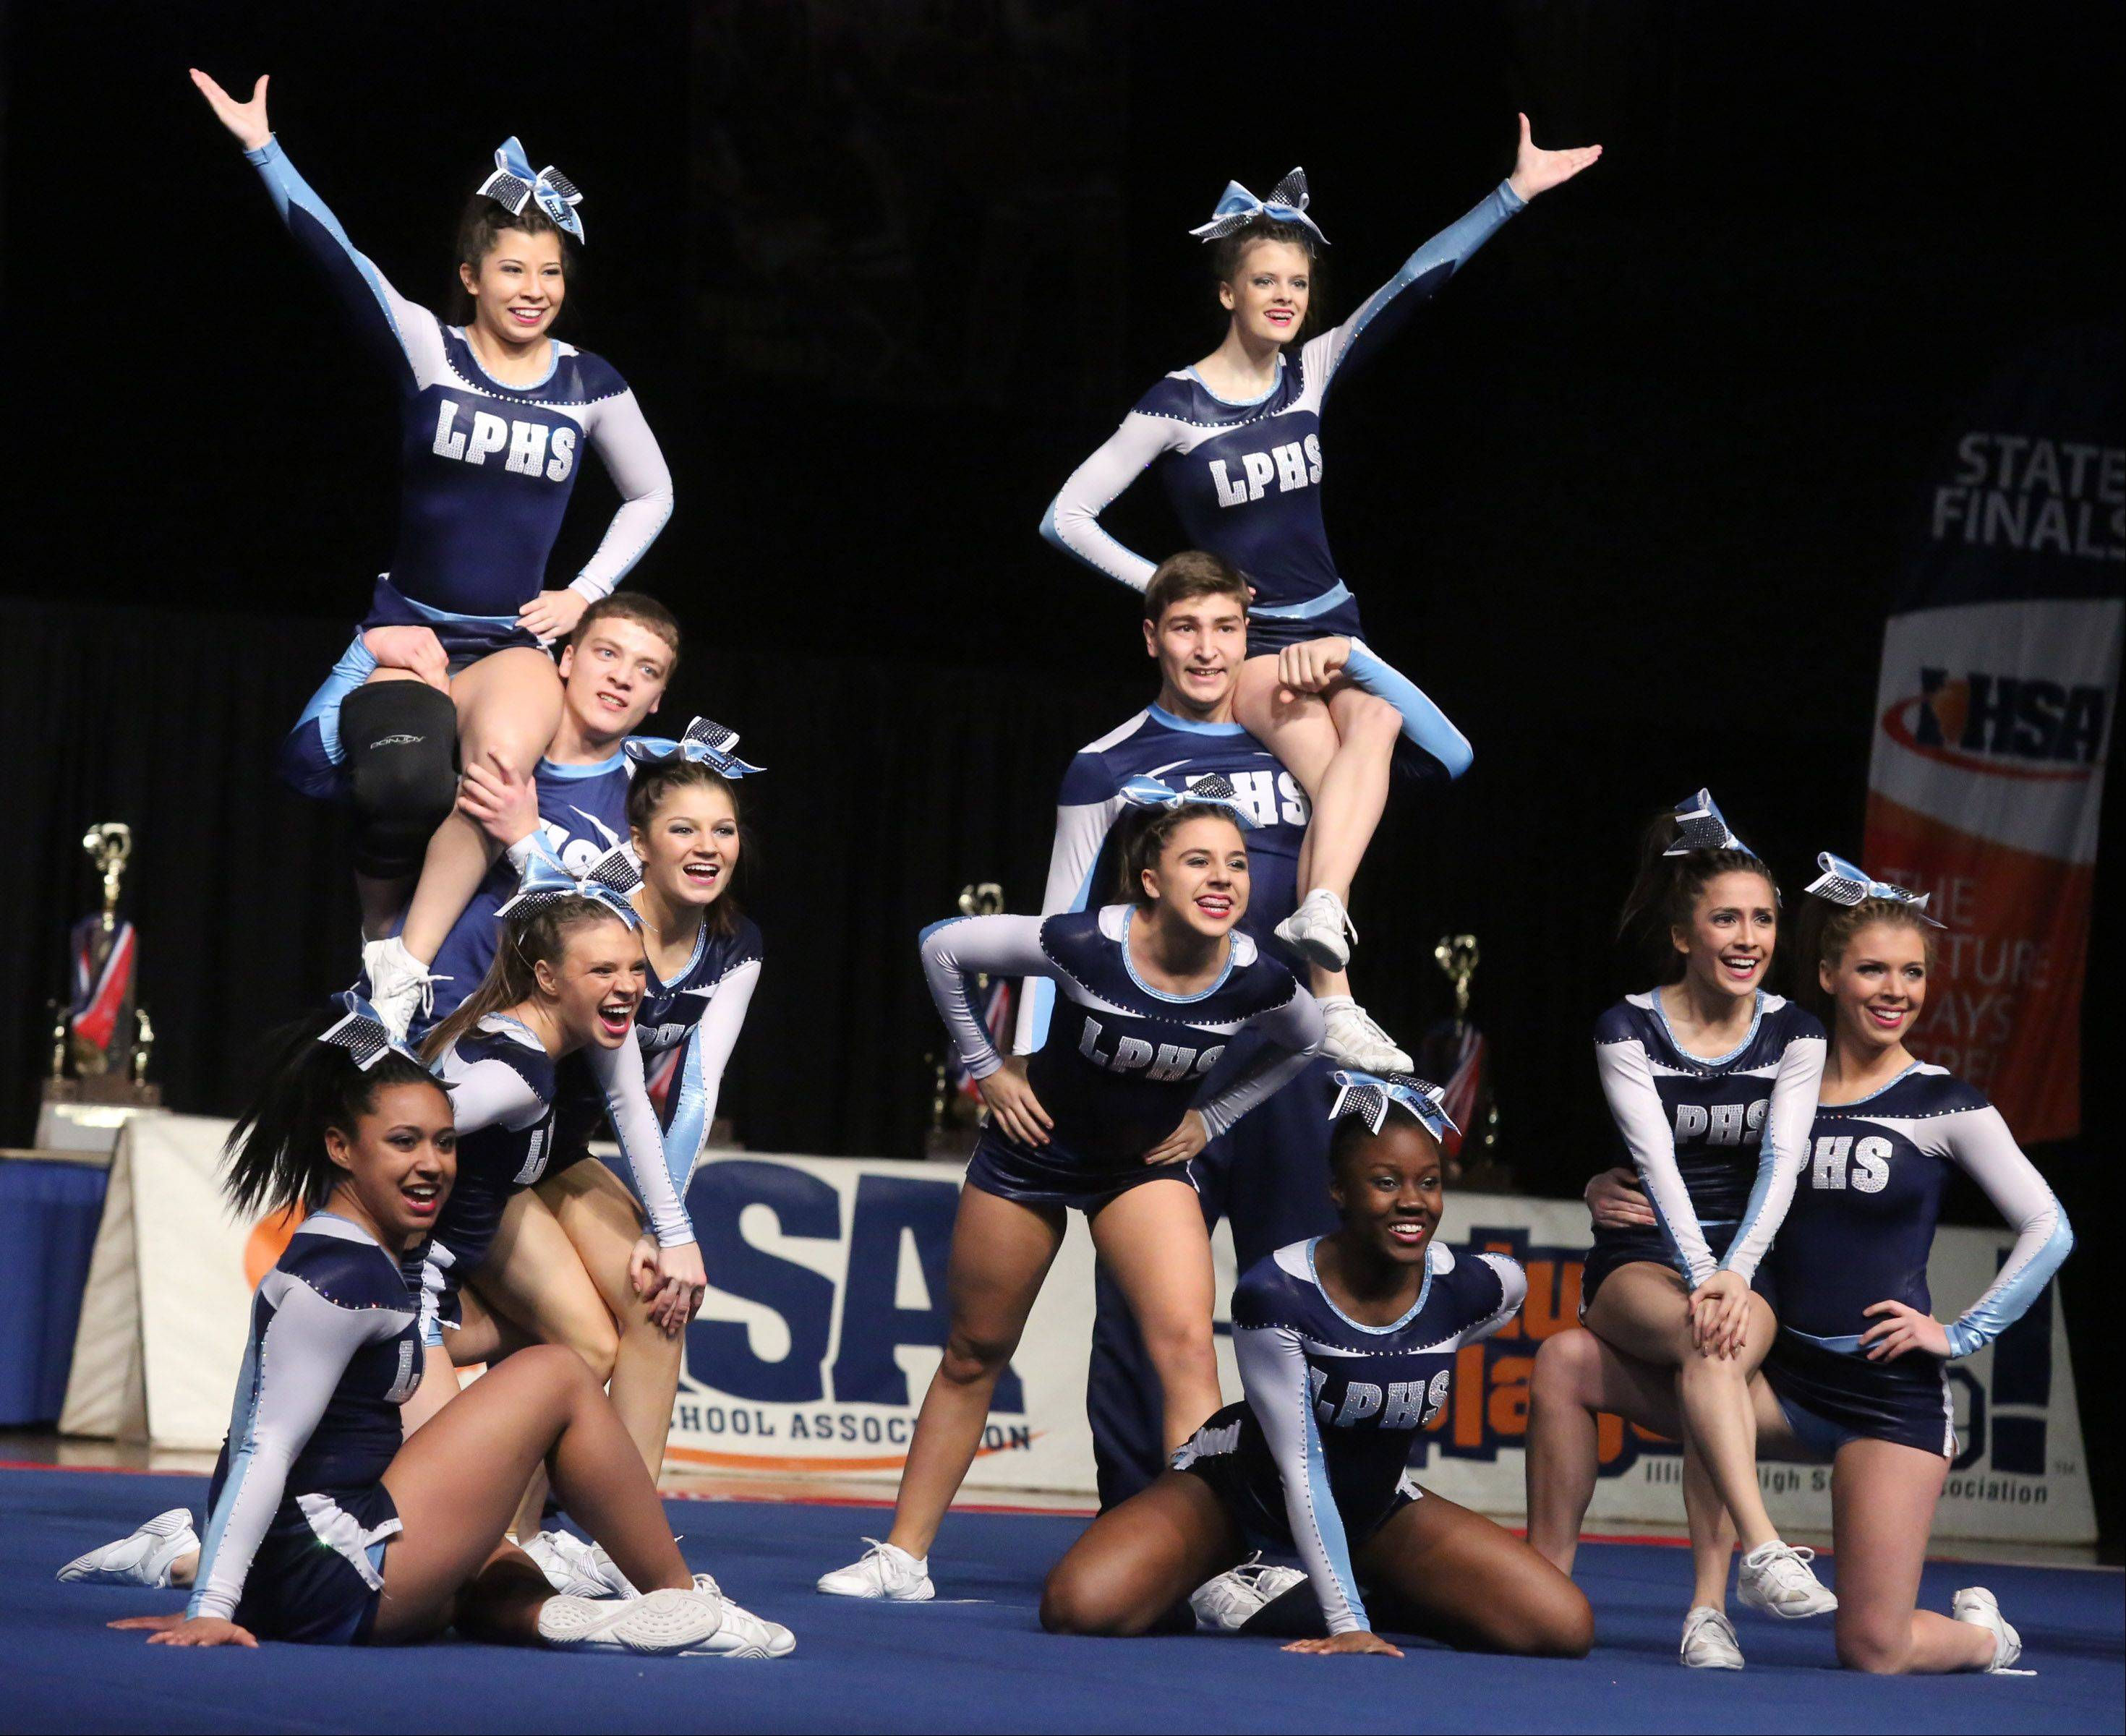 Lake Park High School's cheer team performs in the coed team category.